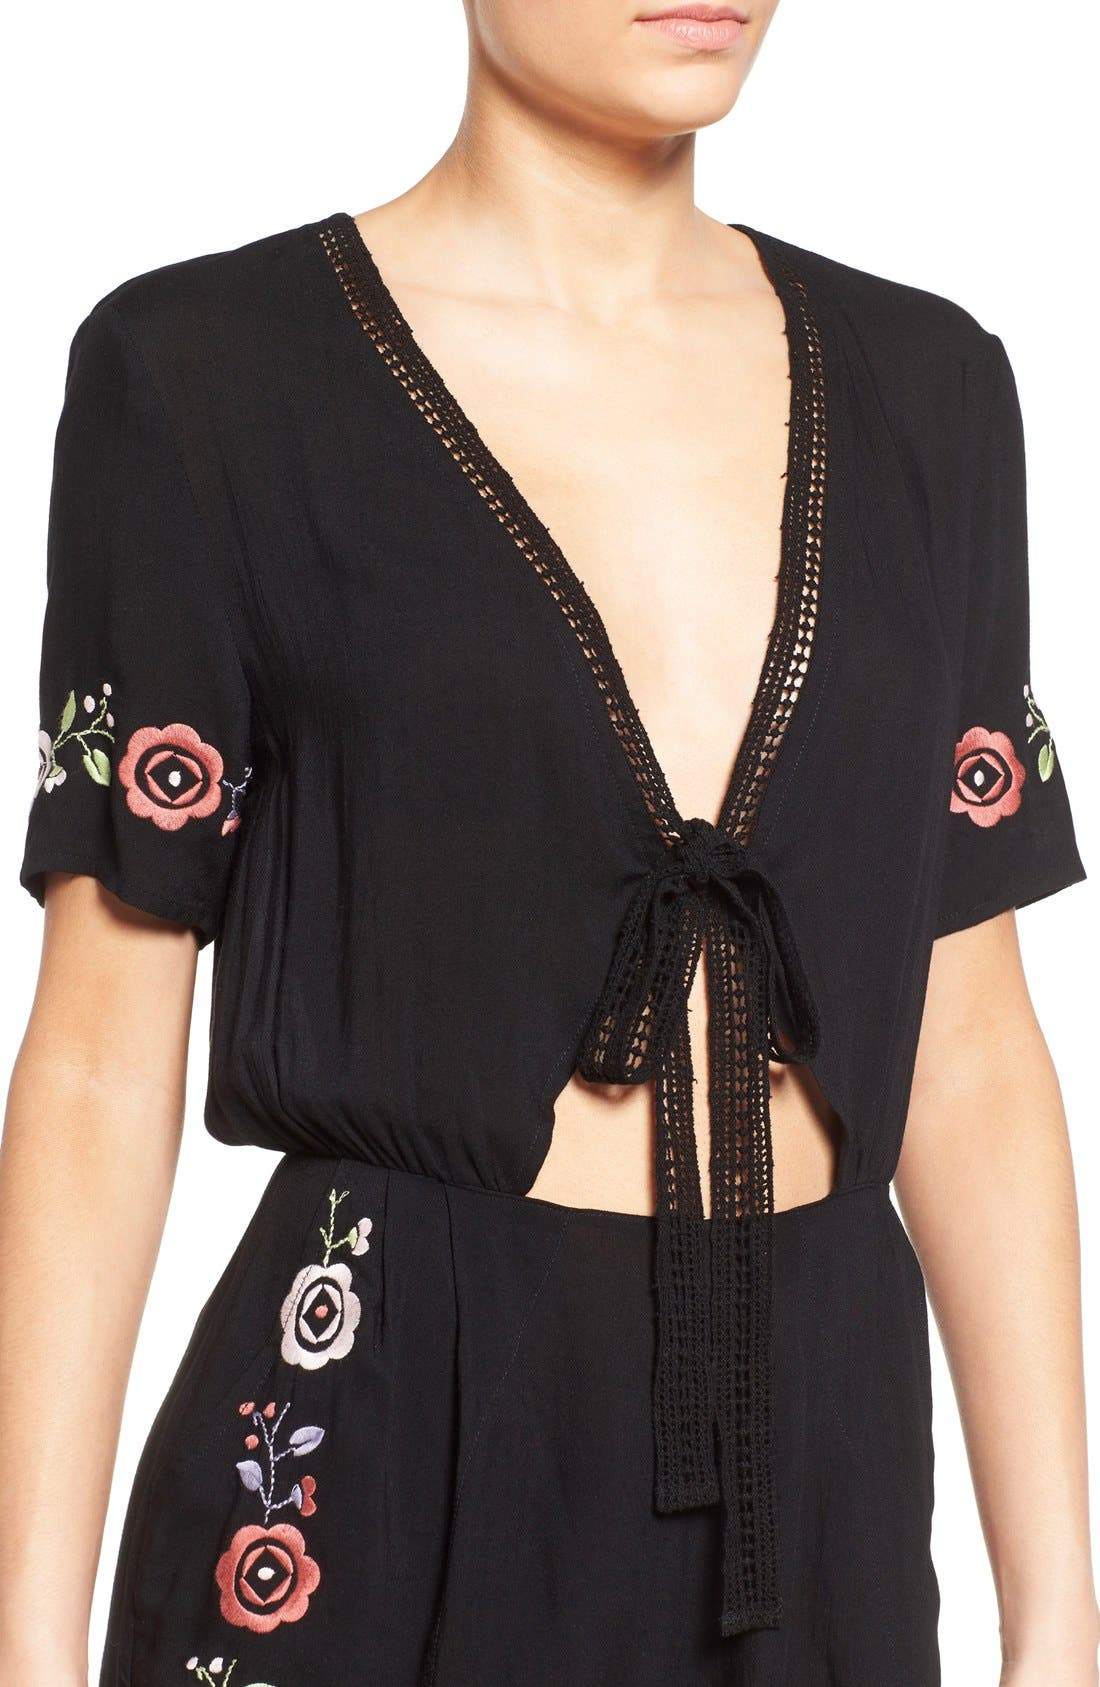 'Wide Eyes' Embroidered Romper,                             Alternate thumbnail 4, color,                             001